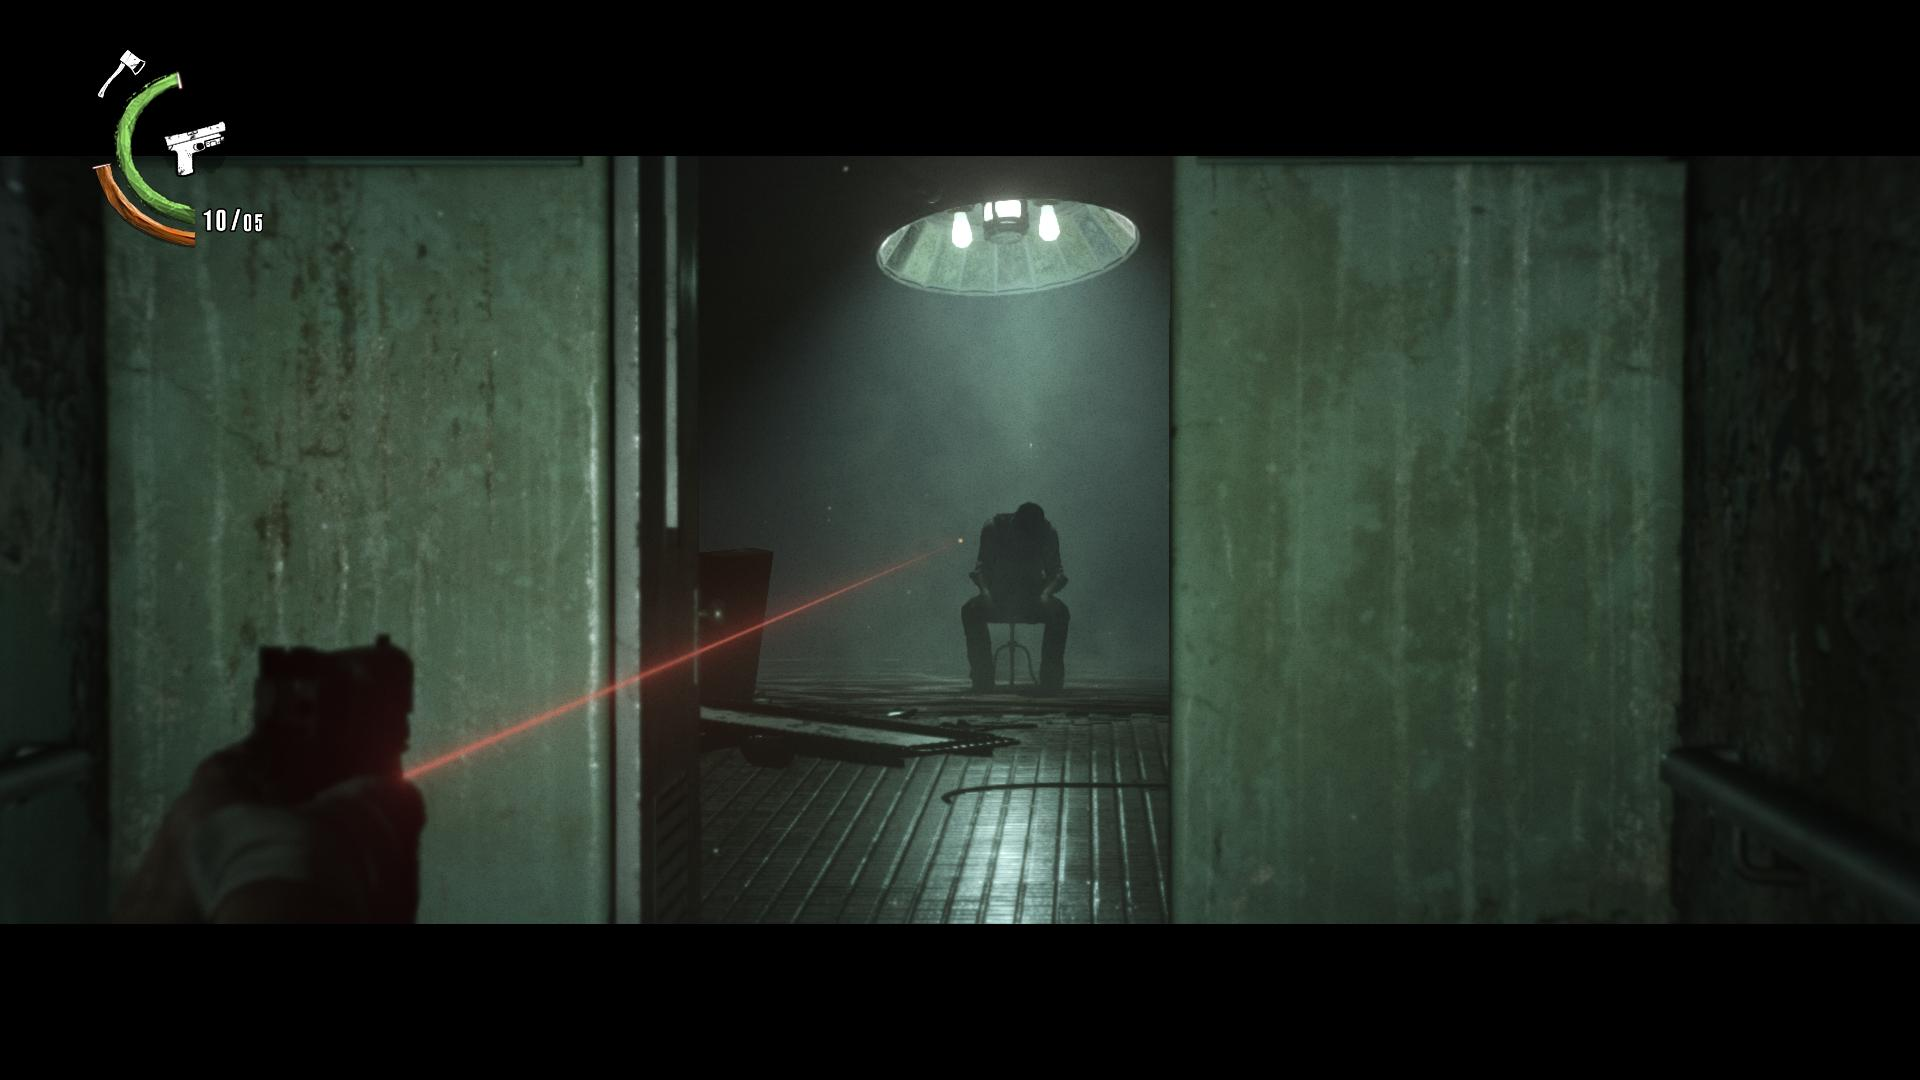 00030.Jpg - Evil Within 2, the